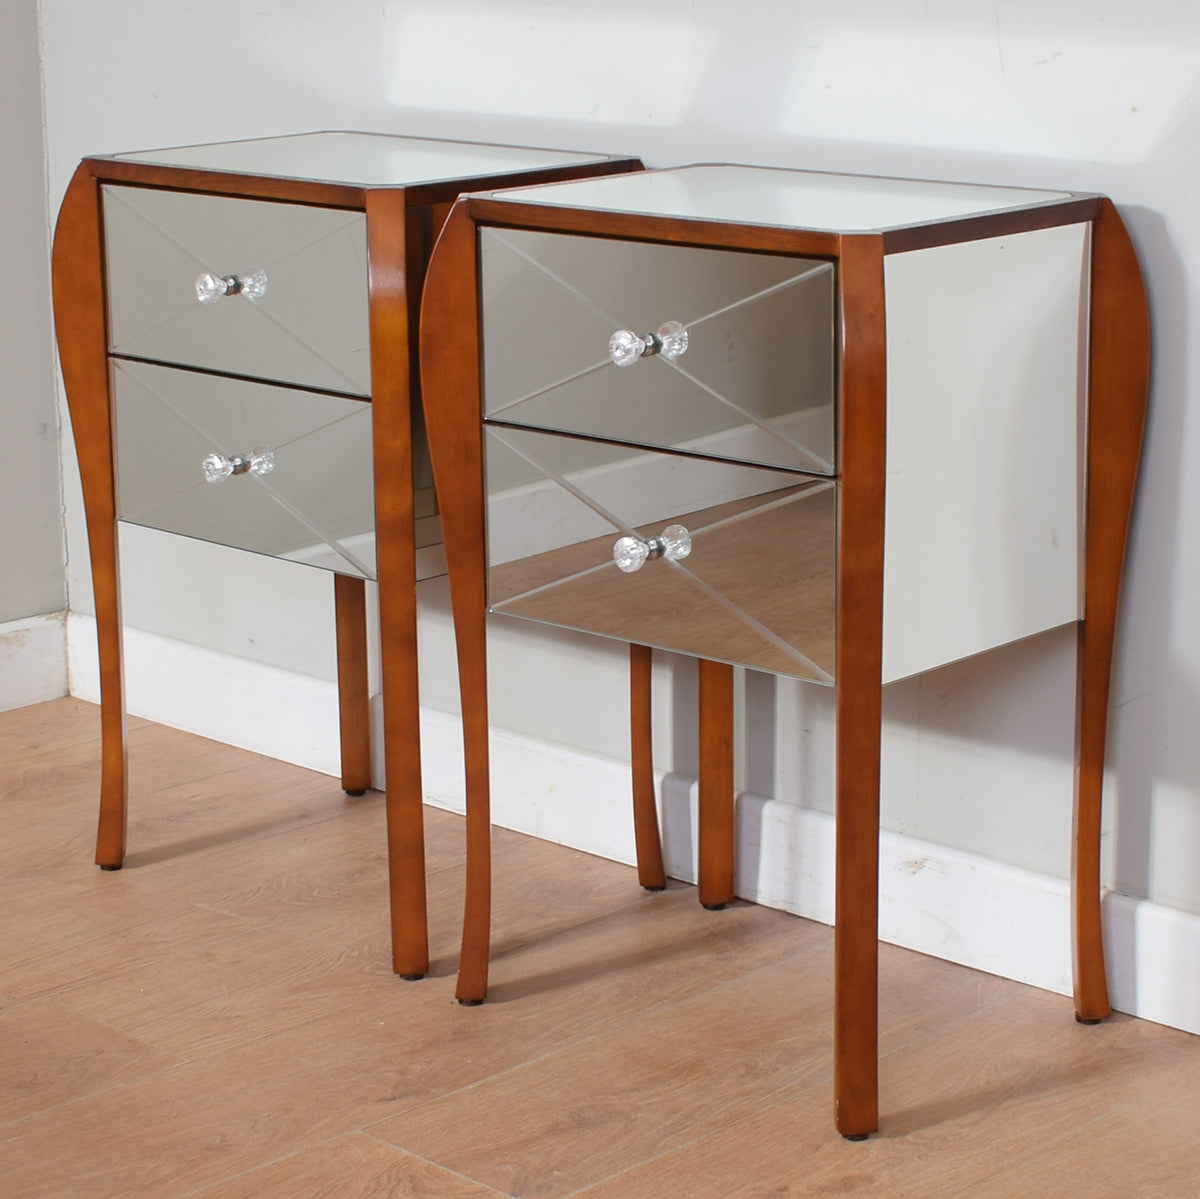 Pair of Mirrored Bedside Tables